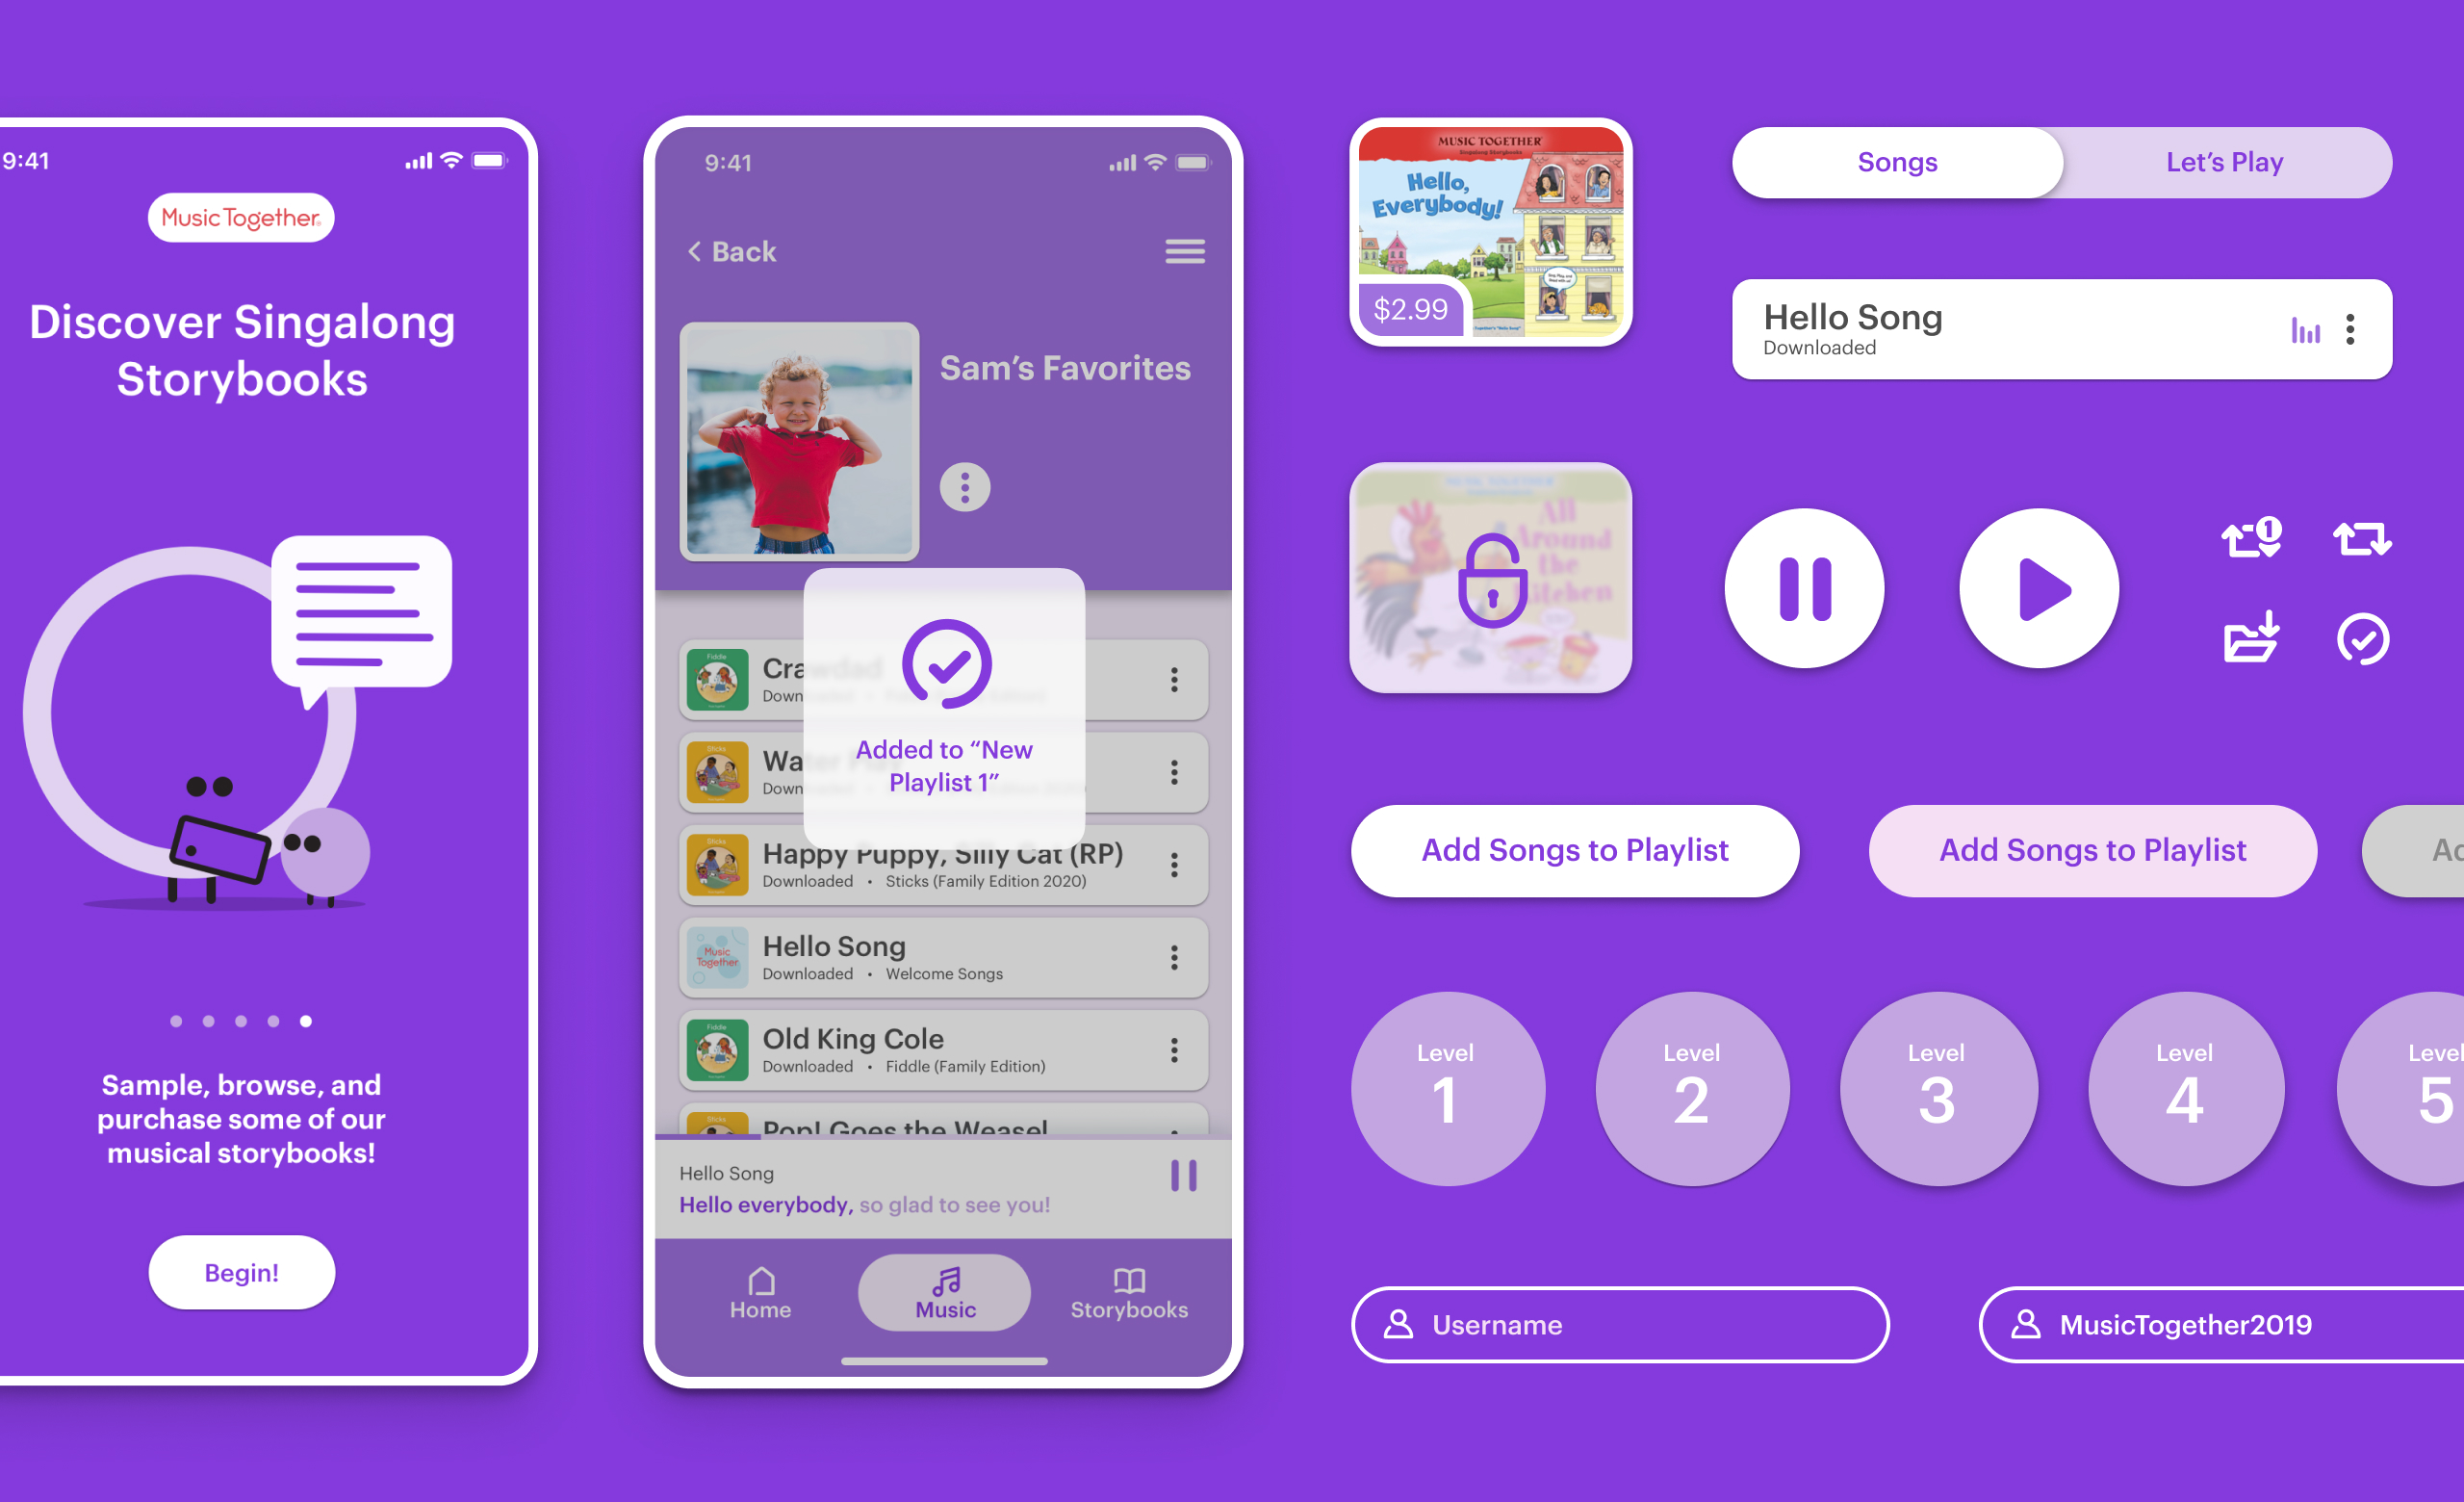 A grid of UI components used on the Hello Everybody app